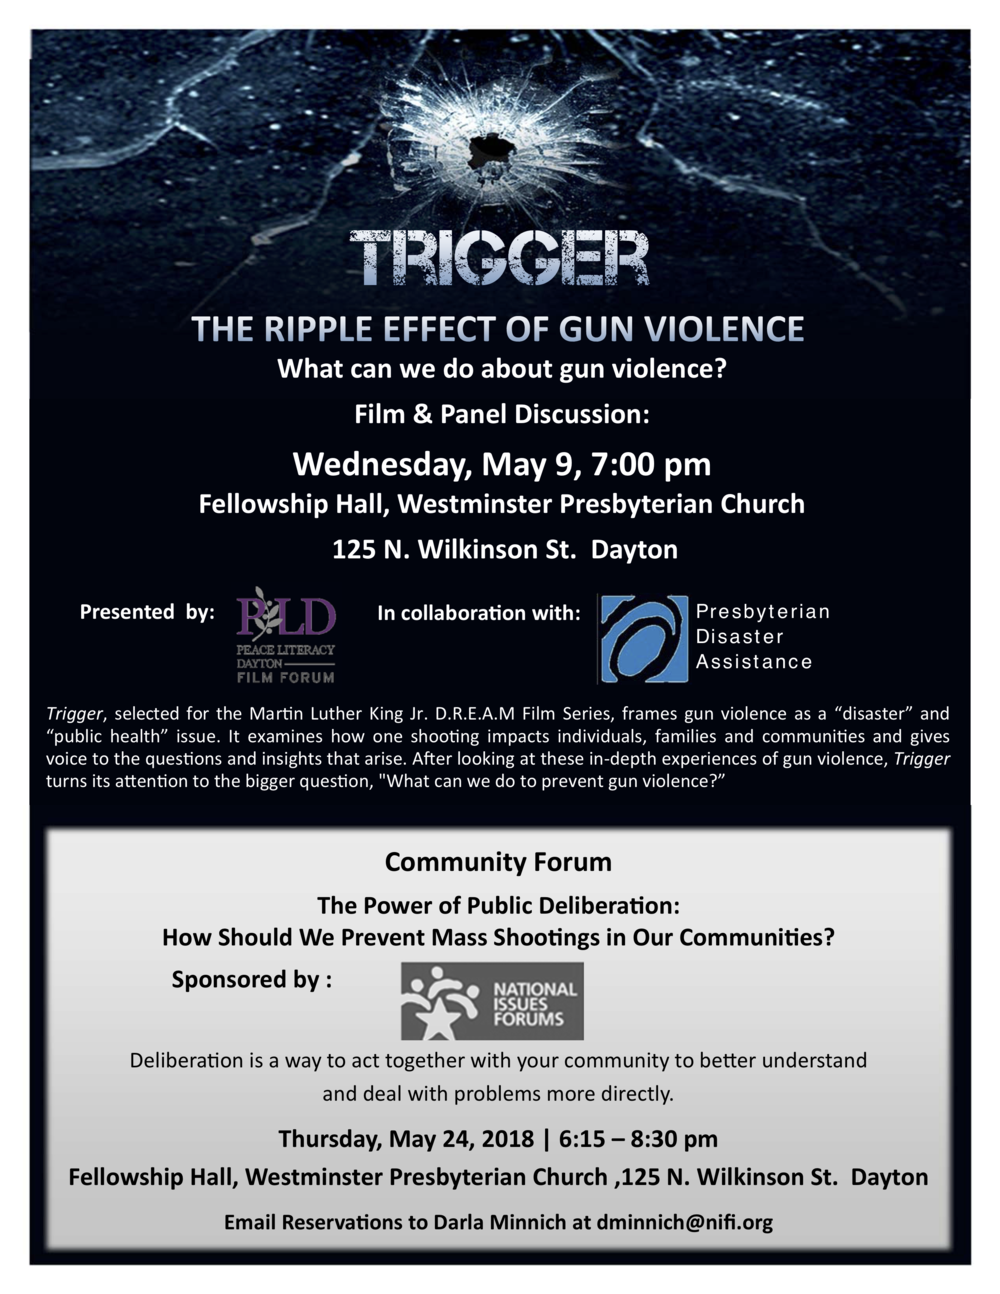 "SEE THE TRAILER/JOIN US FOR A SHOWING ...   A Short Film Highlighting the story of how gun violence impacts individuals and communities and examines its ""ripple effect"" to Be Shown on Wednesday, May 9th at Westminster Presbyterian Church    MORE AT:    https://www.facebook.com/PeaceLiteracyDaytonFilmForum/"